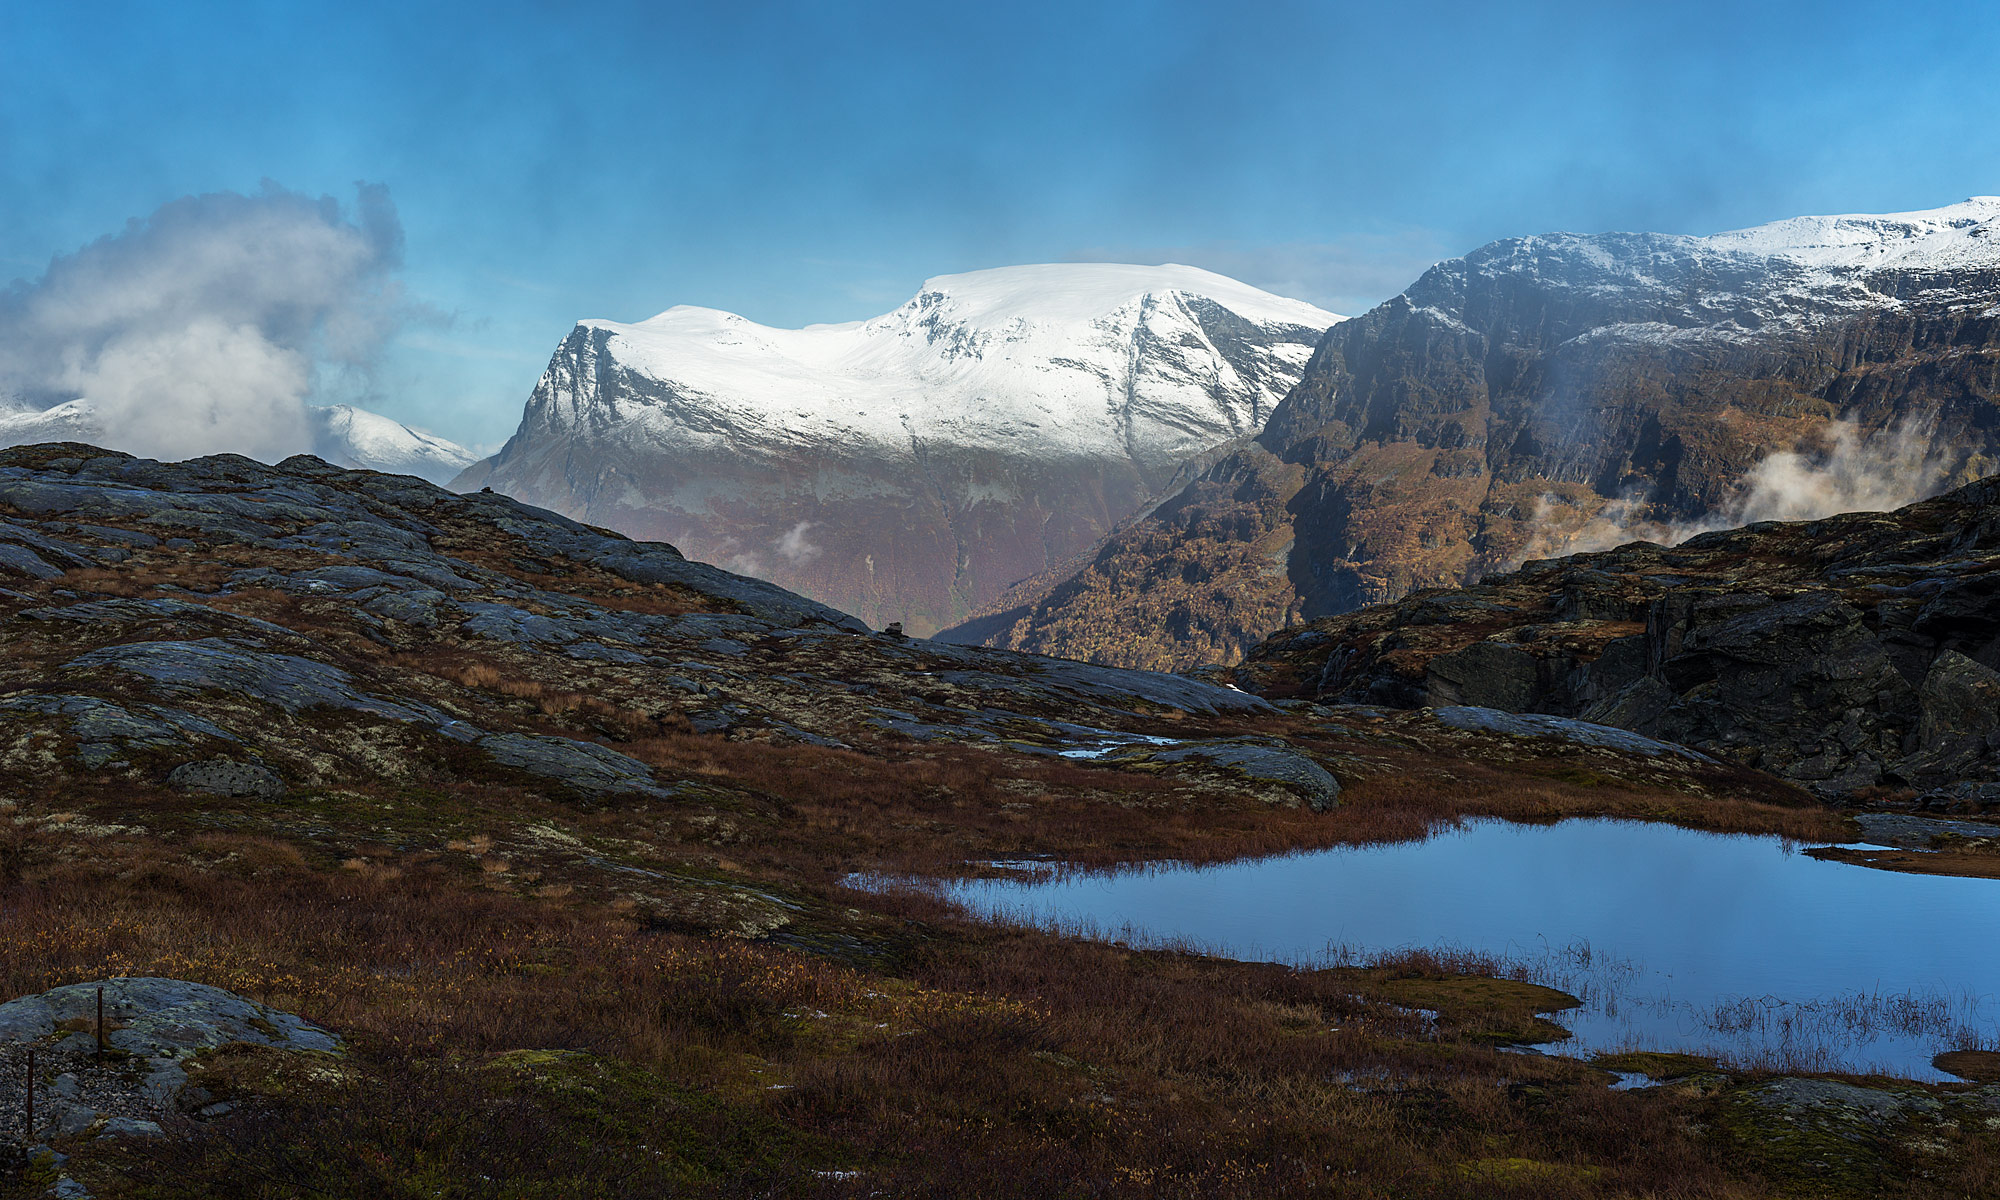 On Geirangervegen – Snow on Sætertverrfjellet and Blåfjellet – Landscape Photography